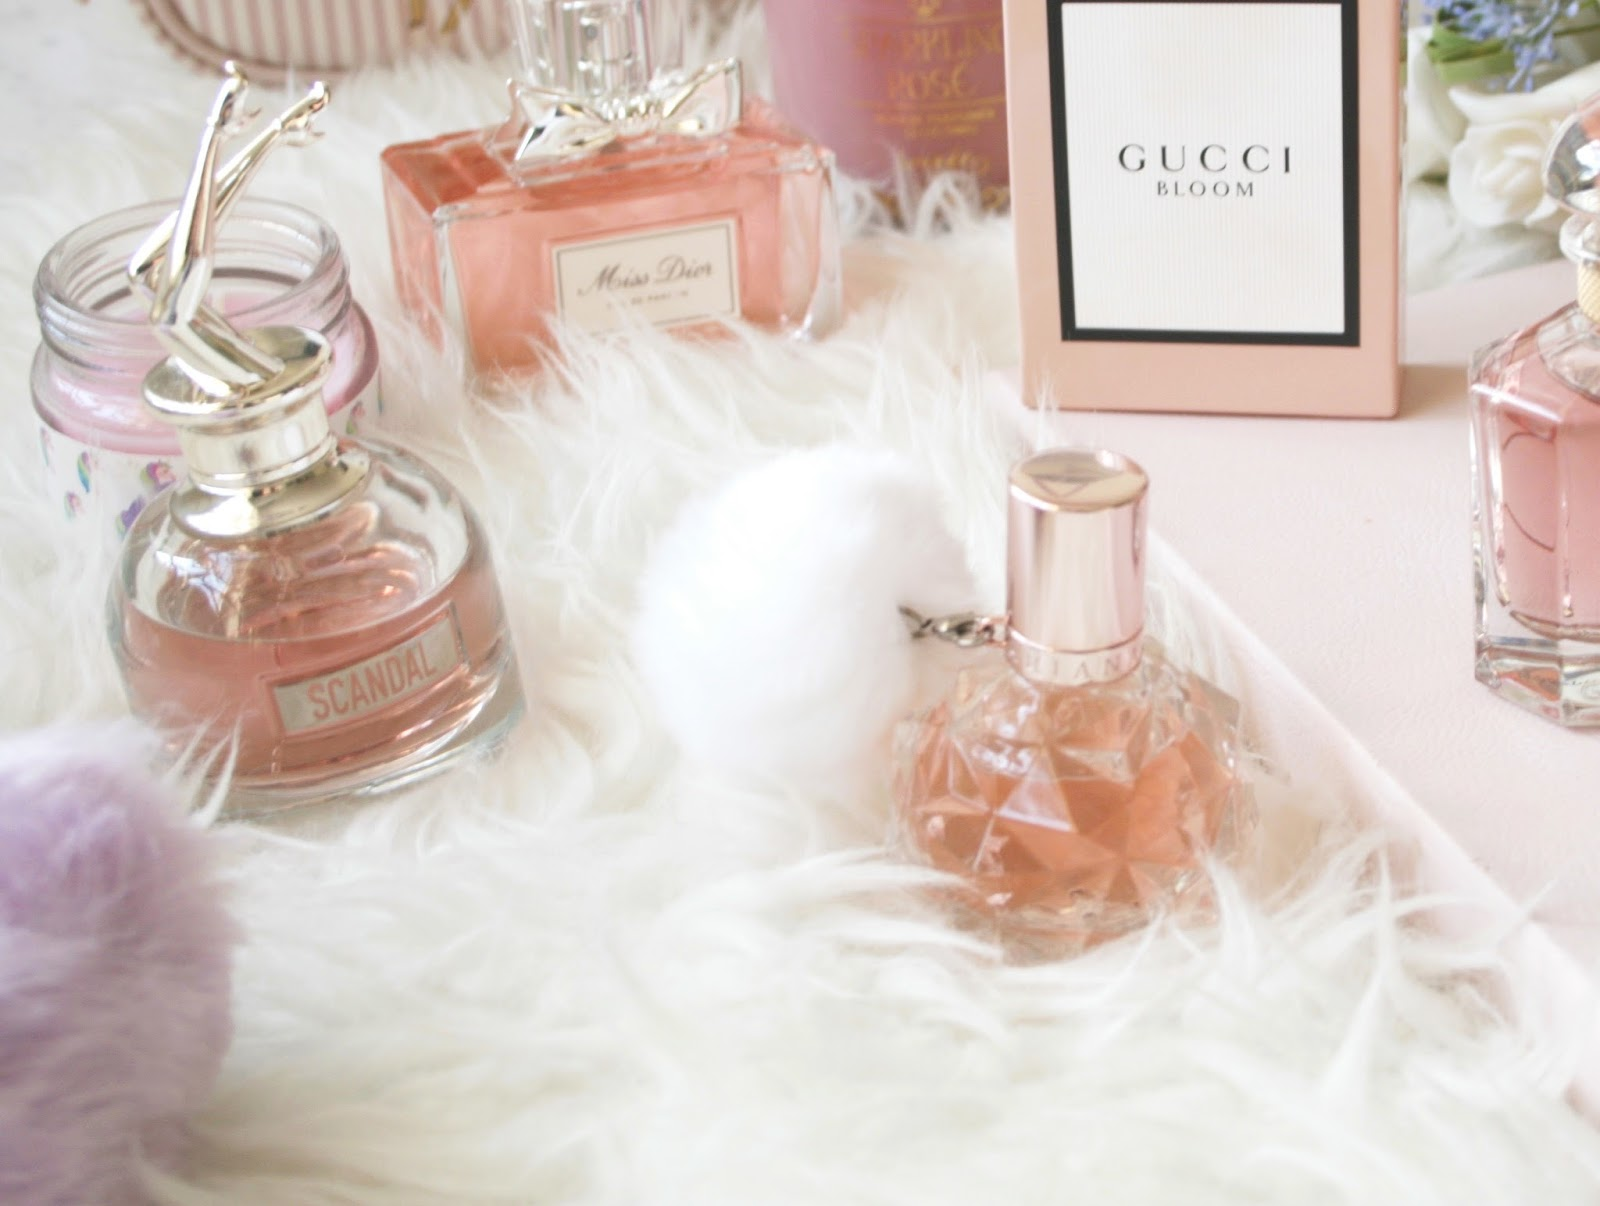 Pretty Fragrance